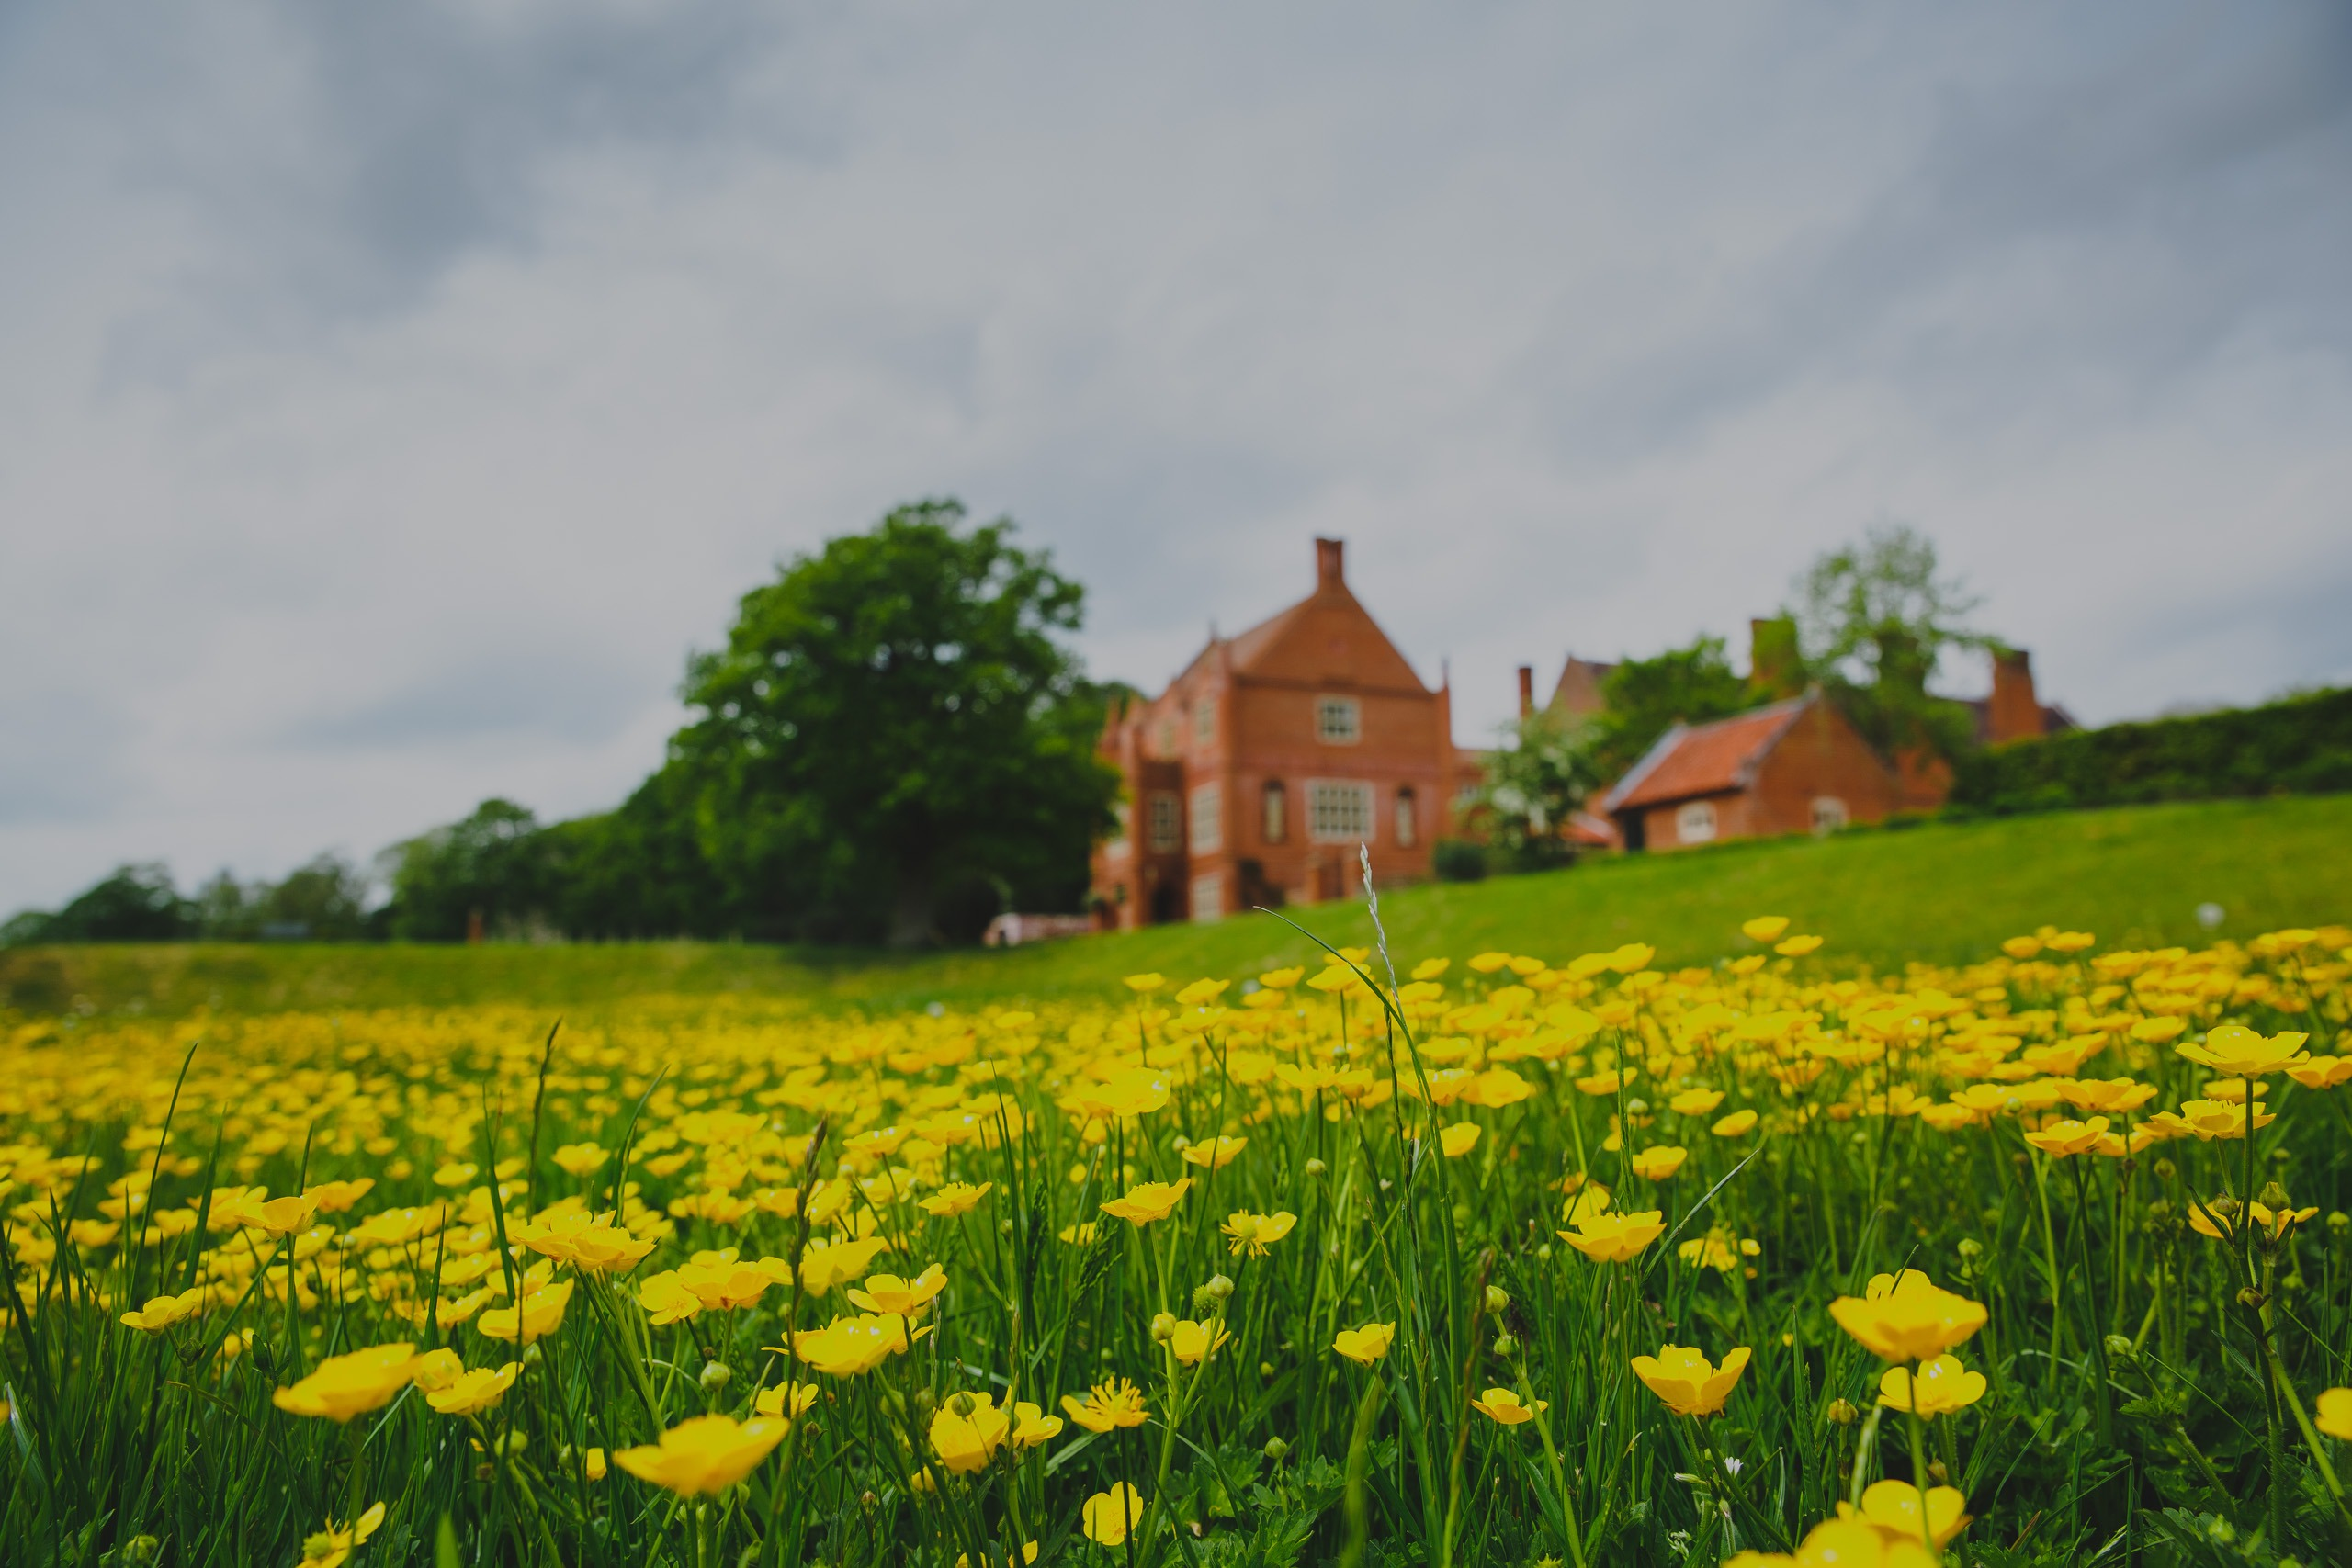 A field of buttercups at Oxnead hall